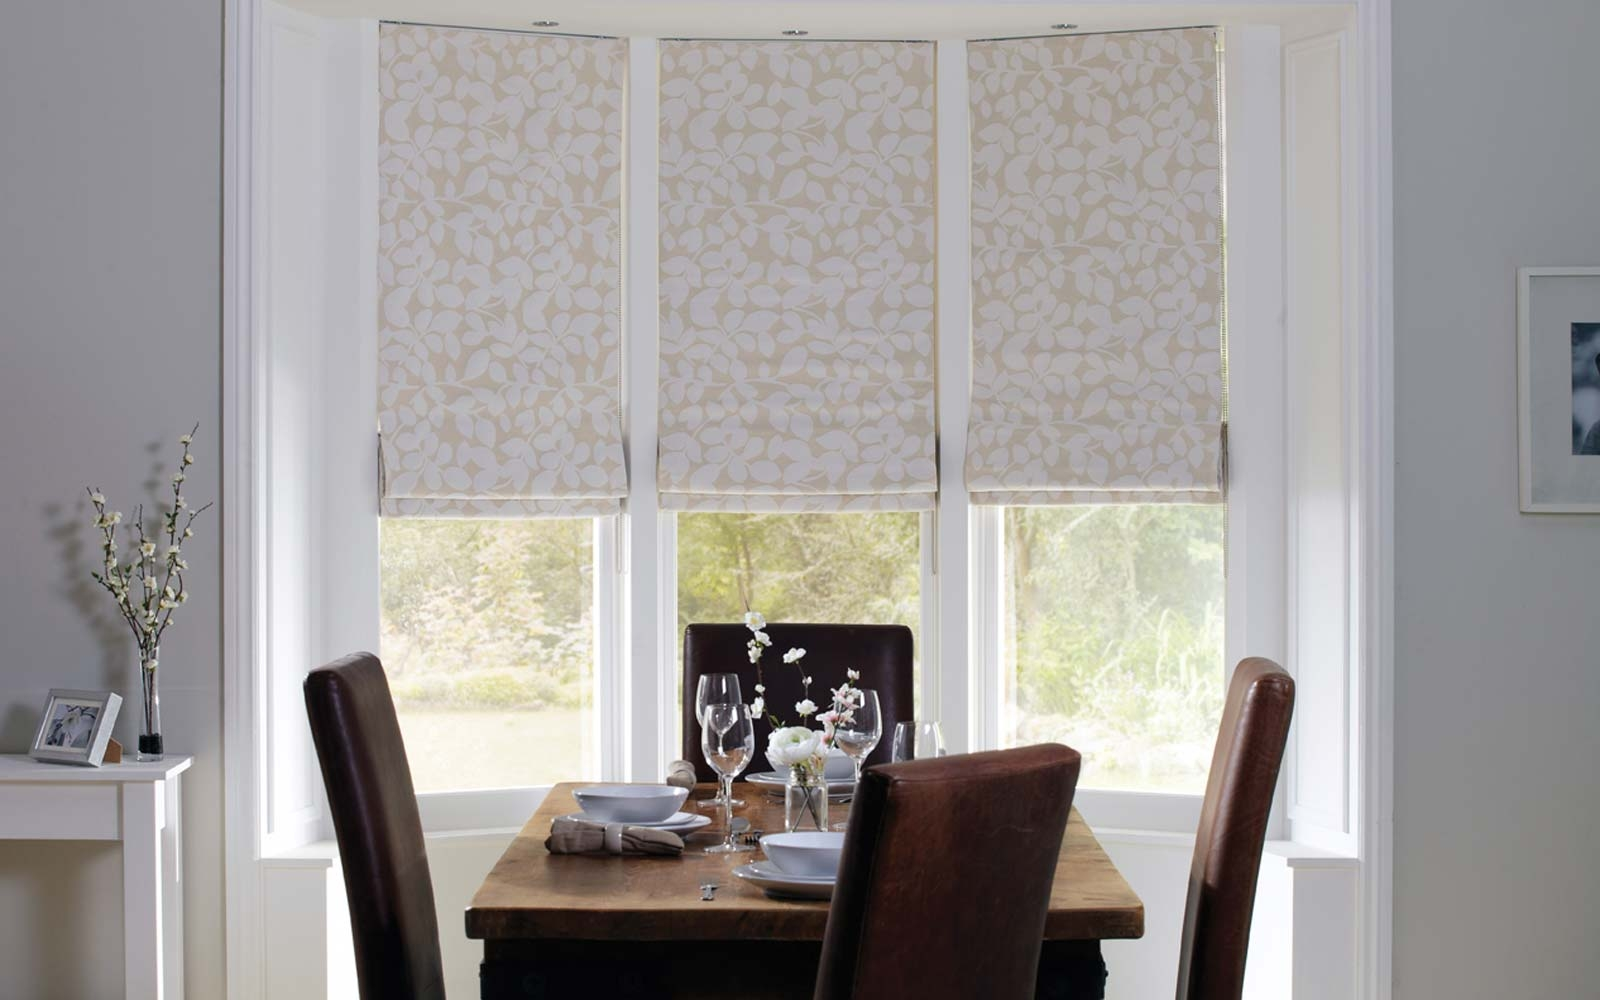 Roman Blinds Surrey Blinds Shutters With Regard To Bay Window Roller Blinds (Image 11 of 15)